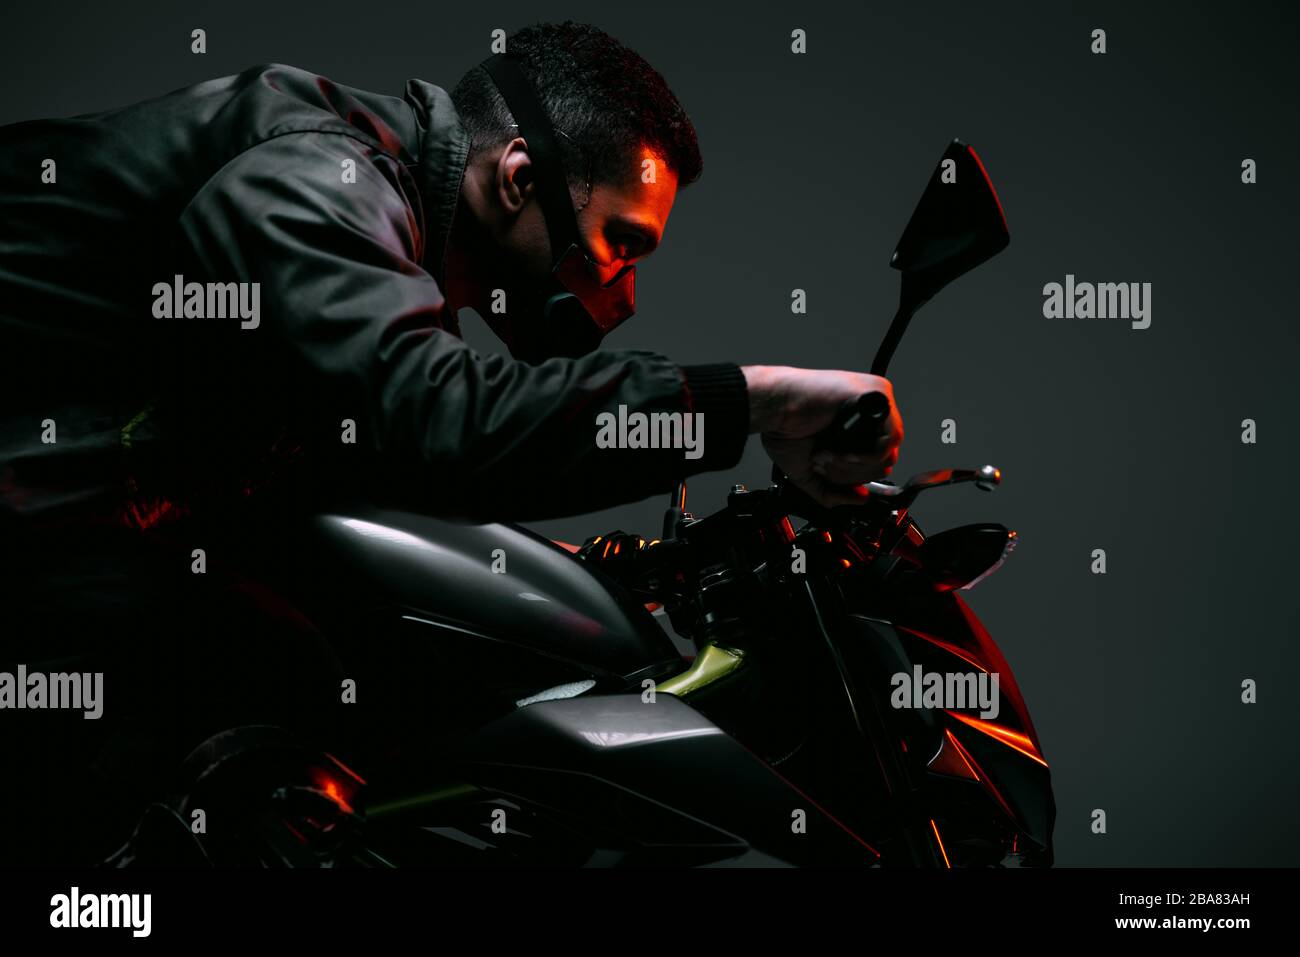 Profile Of Mixed Race Cyberpunk Player In Mask Riding Motorcycle On Grey Stock Photo Alamy